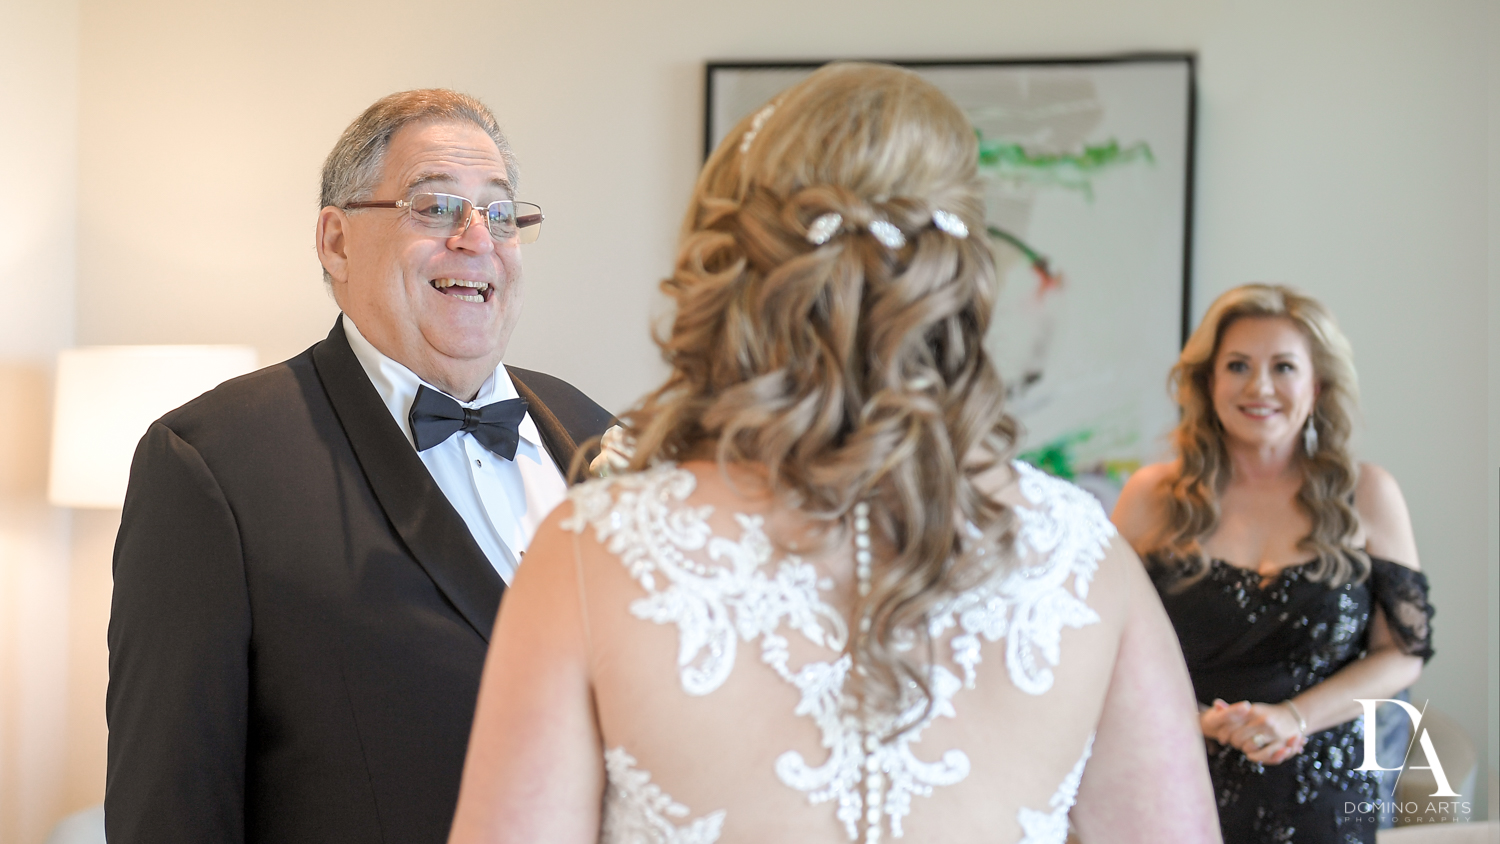 bride and dad at Ultimate Events Wedding at Turnberry Isle Resort Miami by Domino Arts Photography